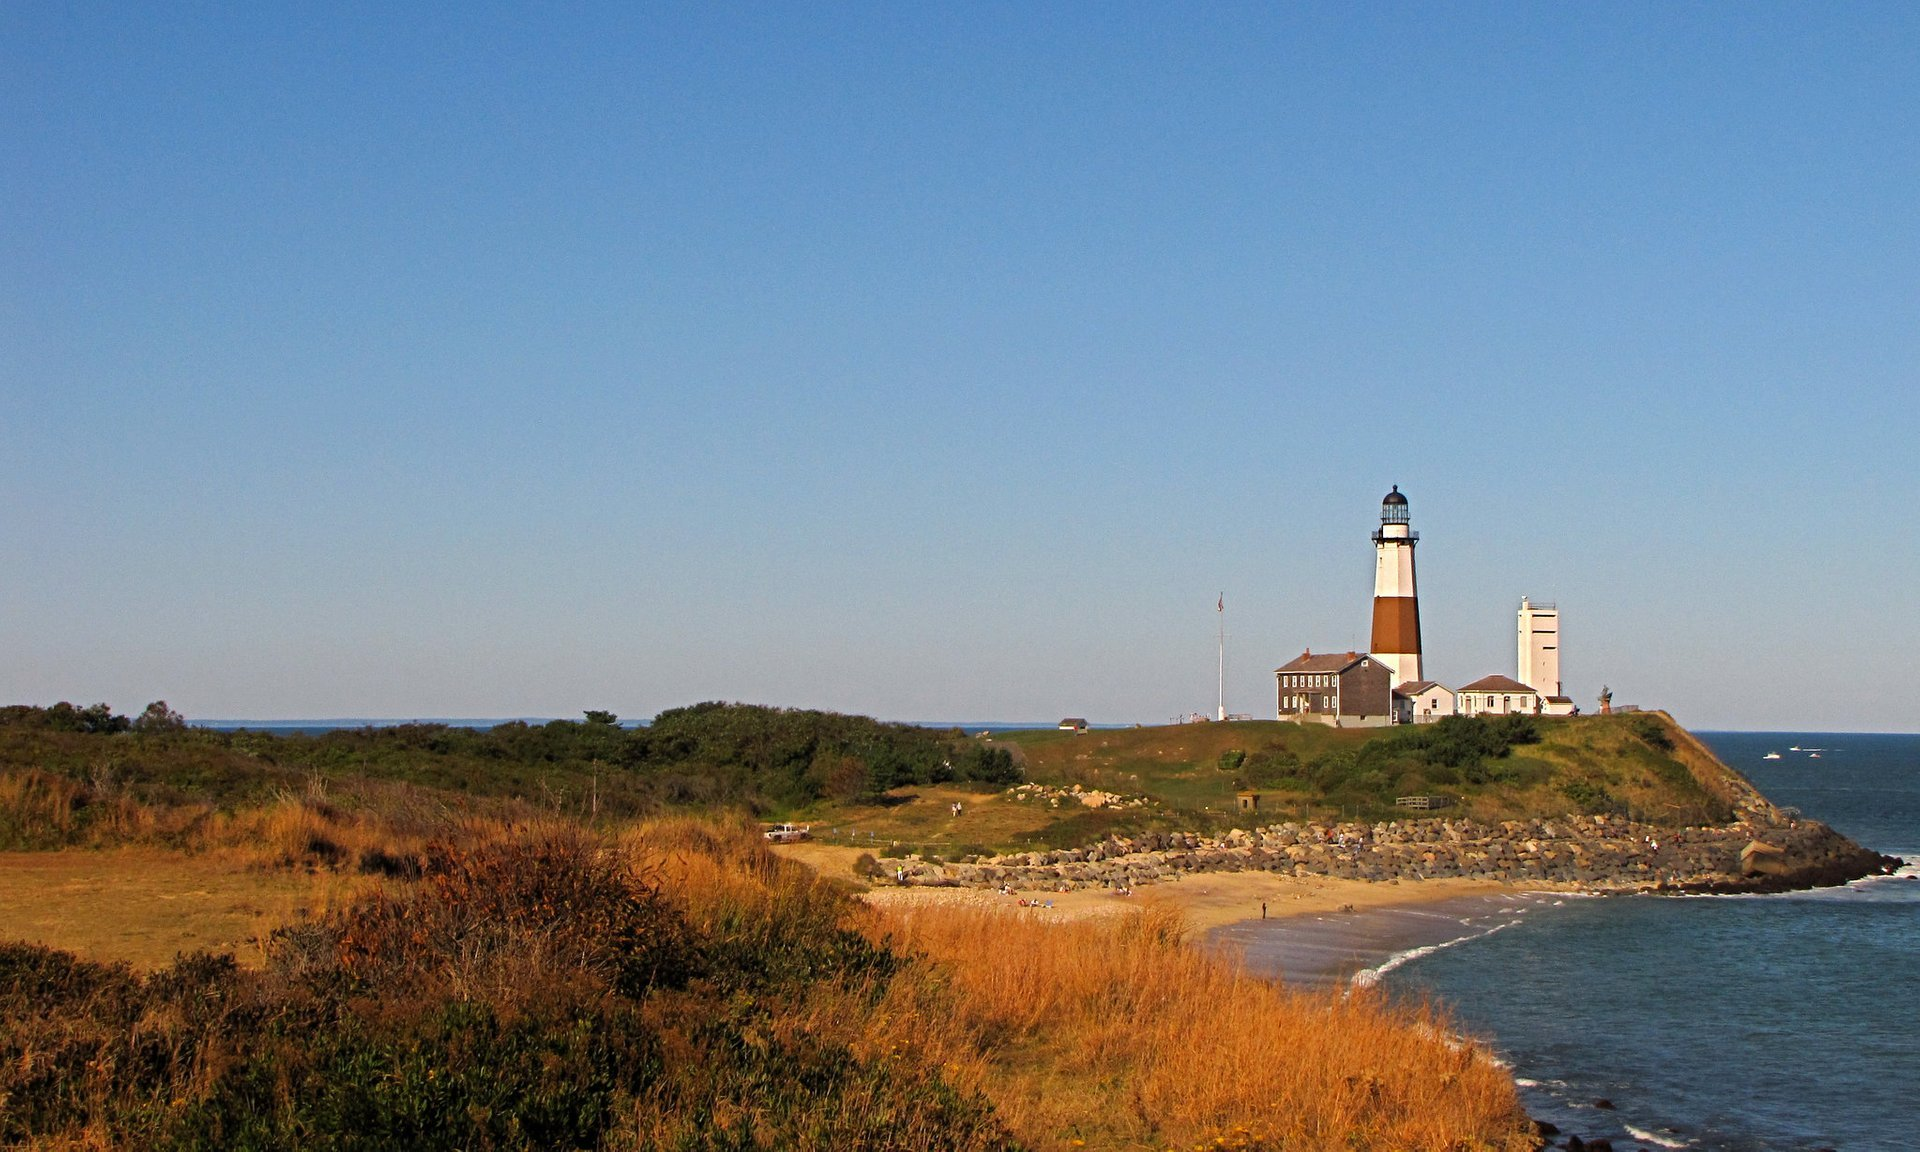 Montauk Point Lighthouse at the easternmost point of Long Island 2020